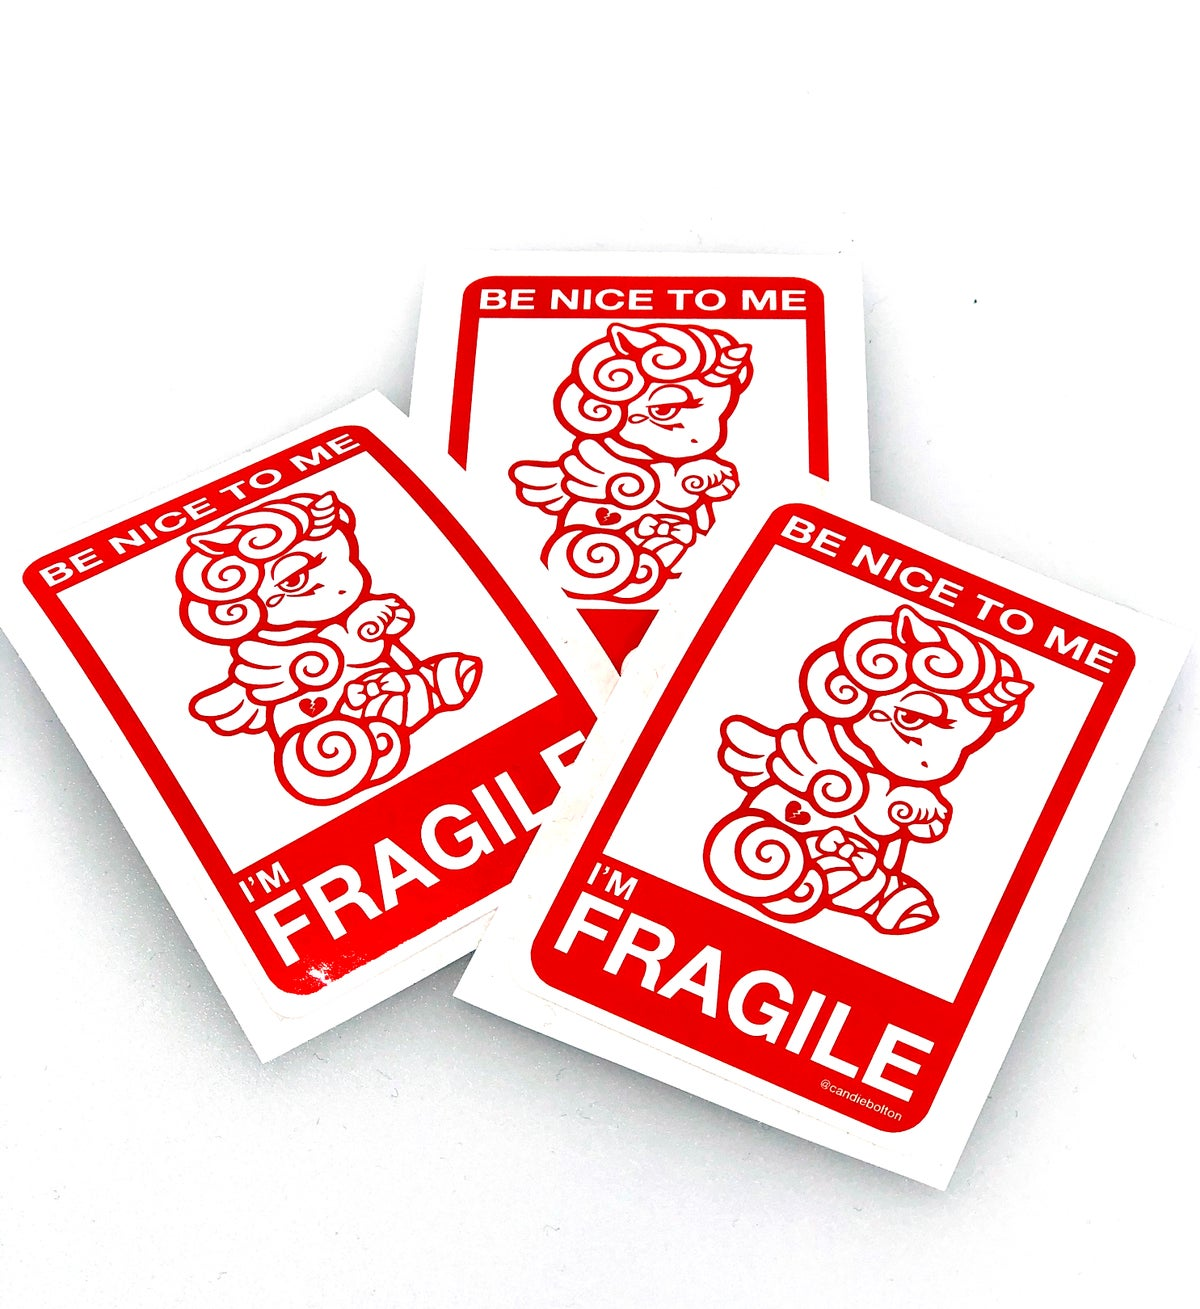 Image of Fragile stickers